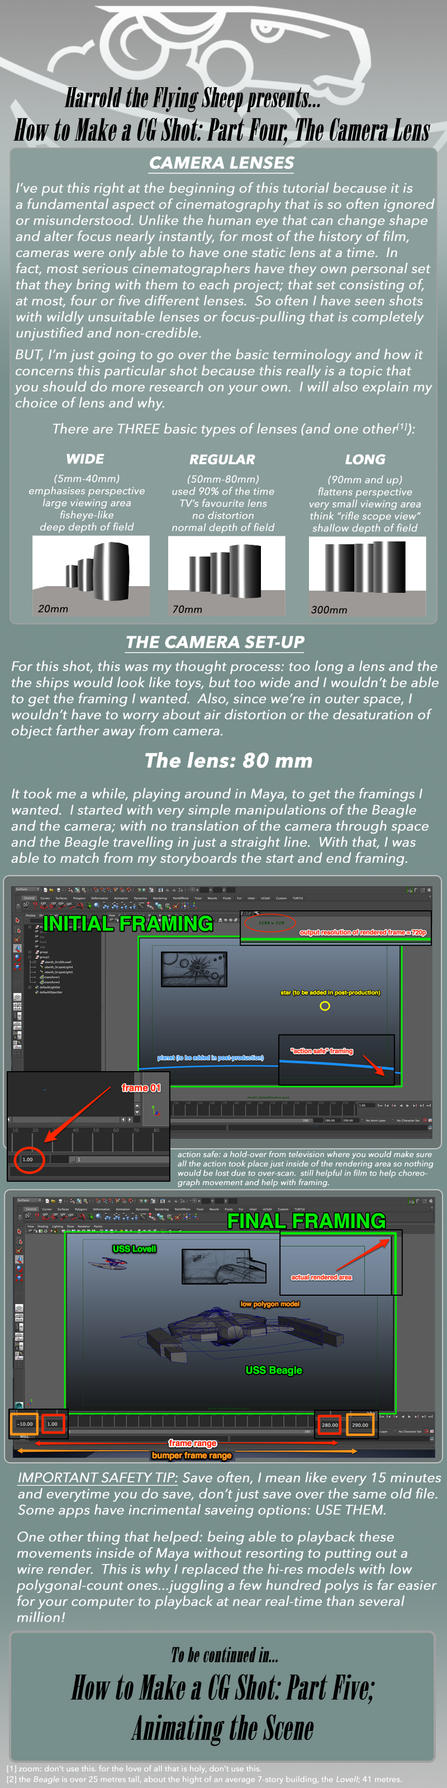 How to Make a CG Shot: Part 4, the Camera Lens by harroldsheep